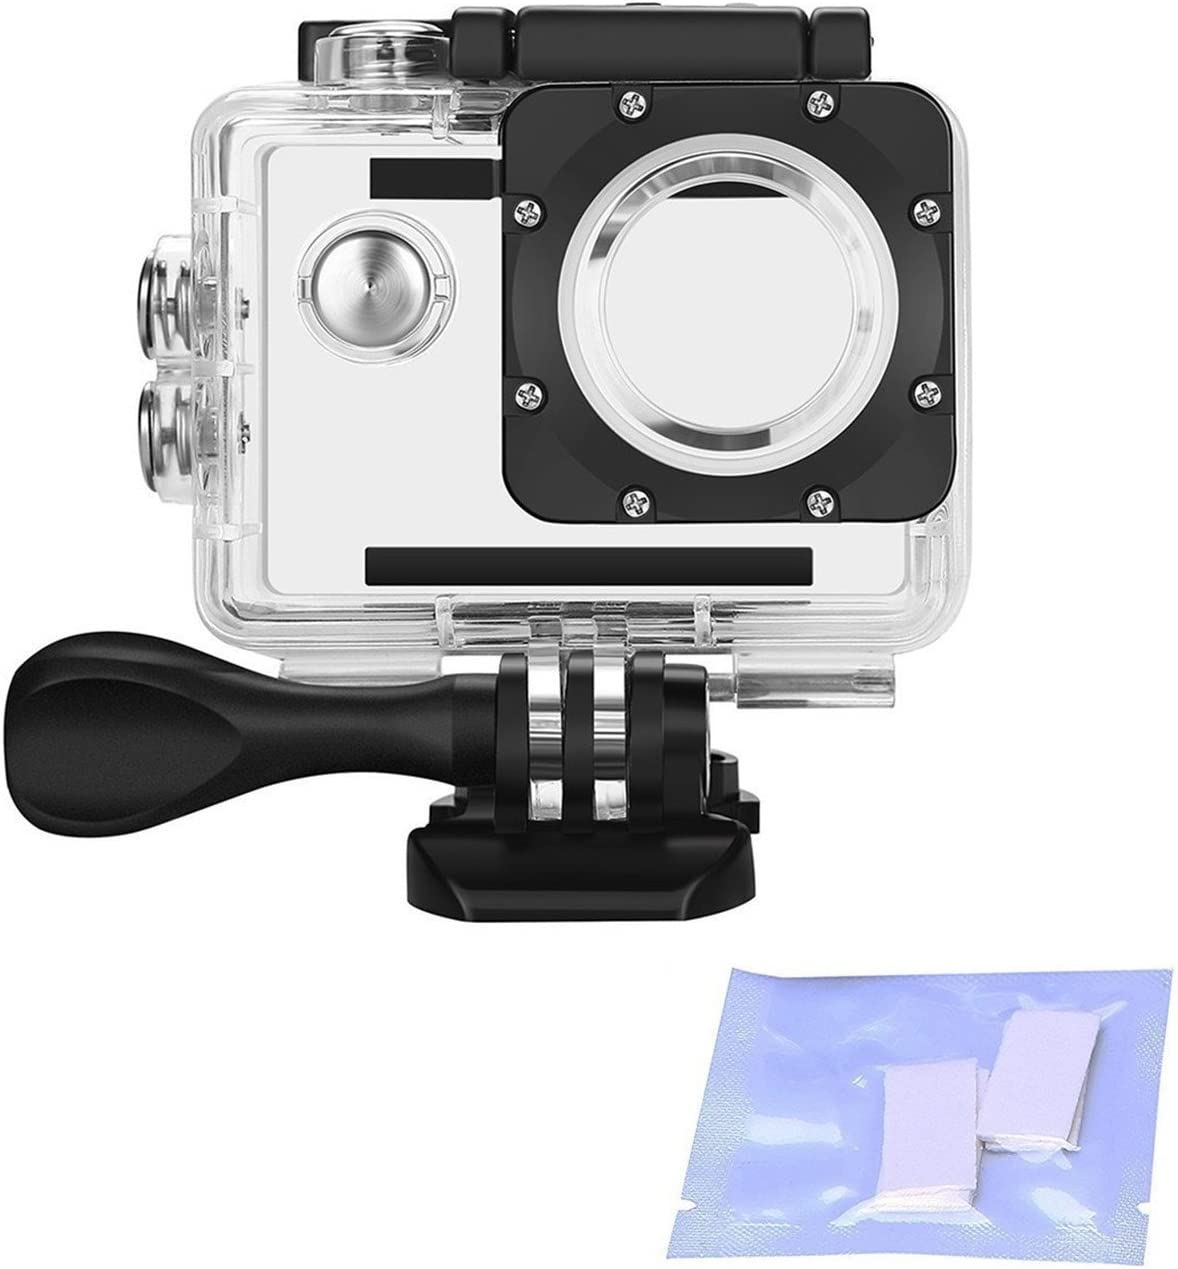 Navitech 50-in-1 Action Camera Accessories Combo KIt with EVA Case Compatible with The Nilox Mini UP Waterproof Compact Action Video Camera